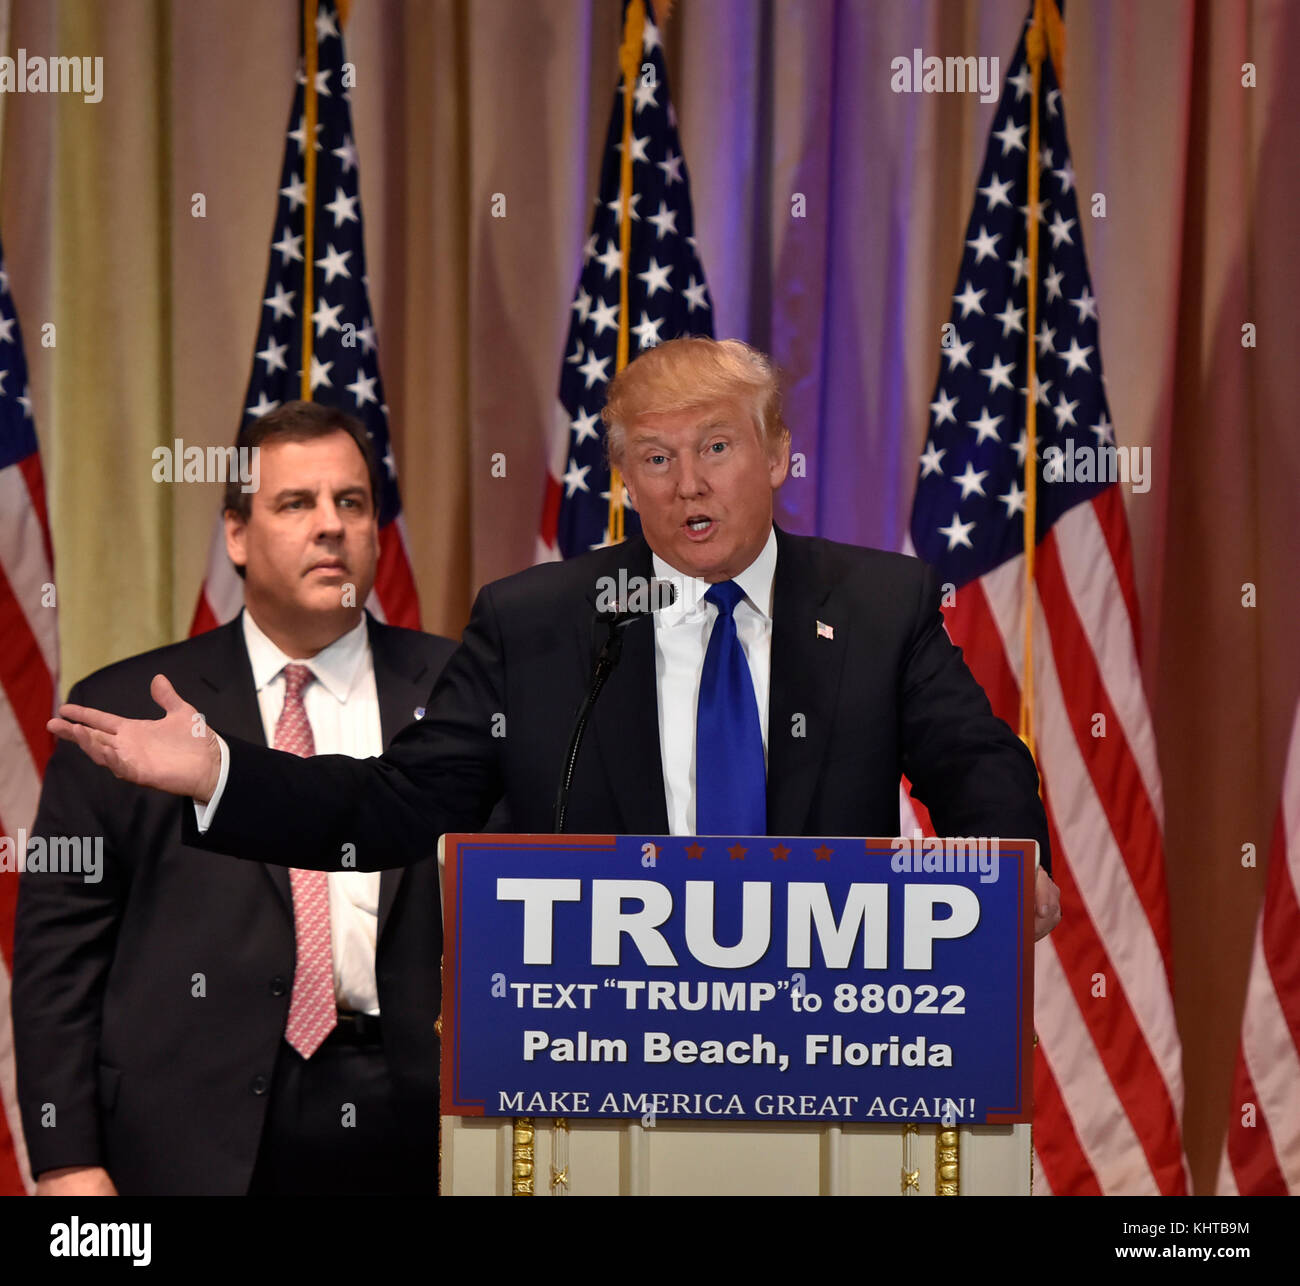 PALM BEACH, FL - MARCH 01: Republican Presidential frontrunner Donald Trump speaks to the media at his Mar-A-Lago - Stock Image